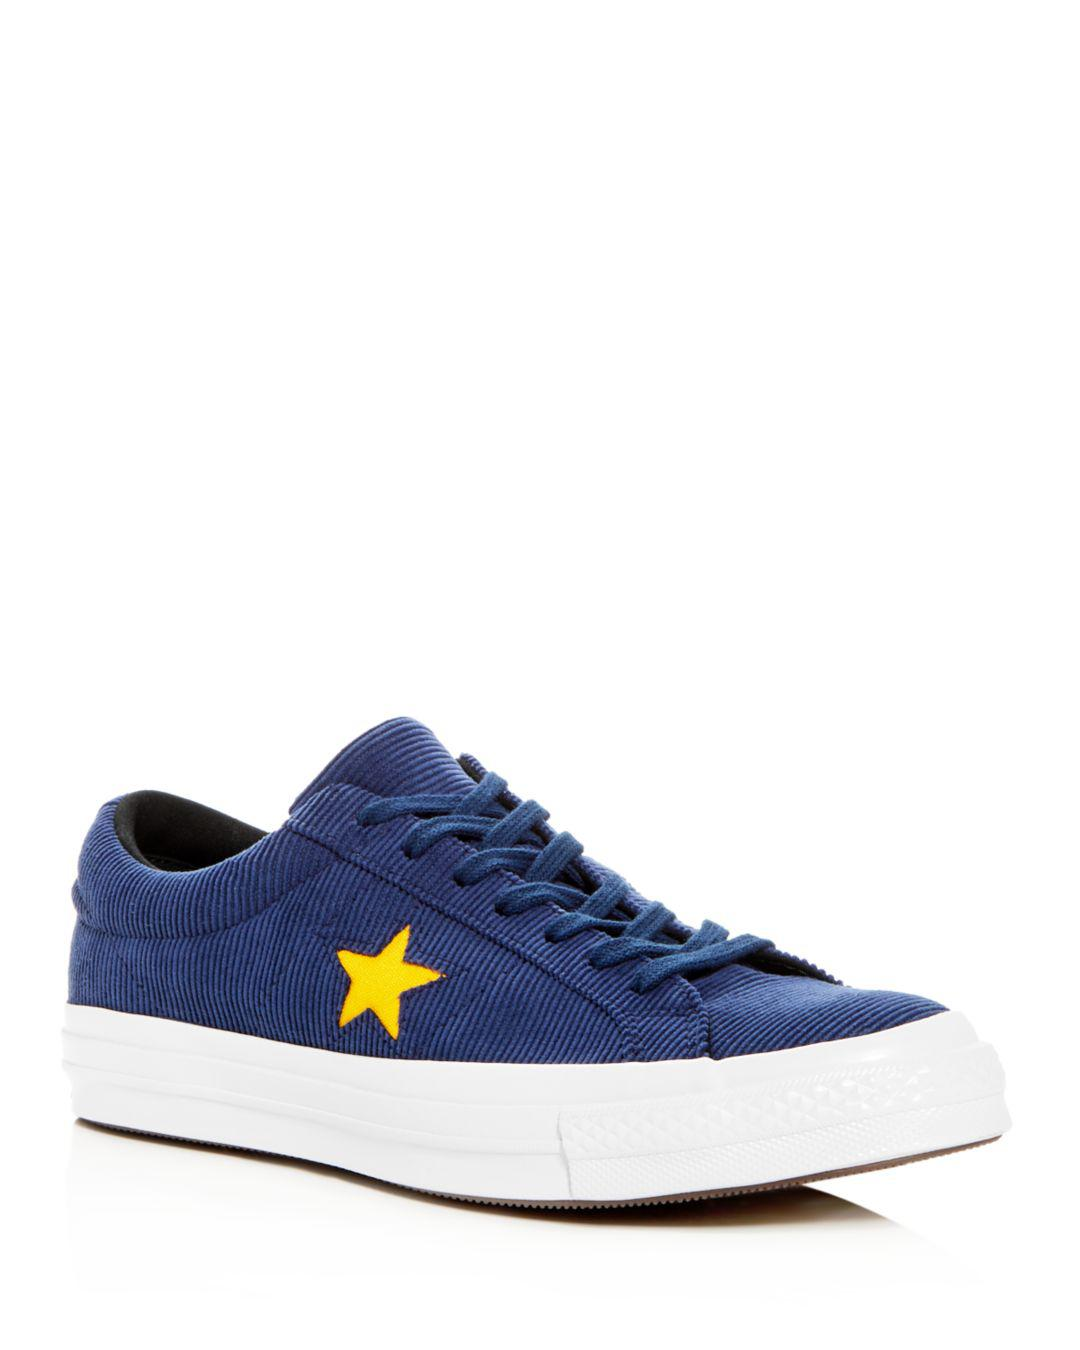 f2347fa315ab Converse Men s One Star Lace-up Sneakers in Blue for Men - Lyst